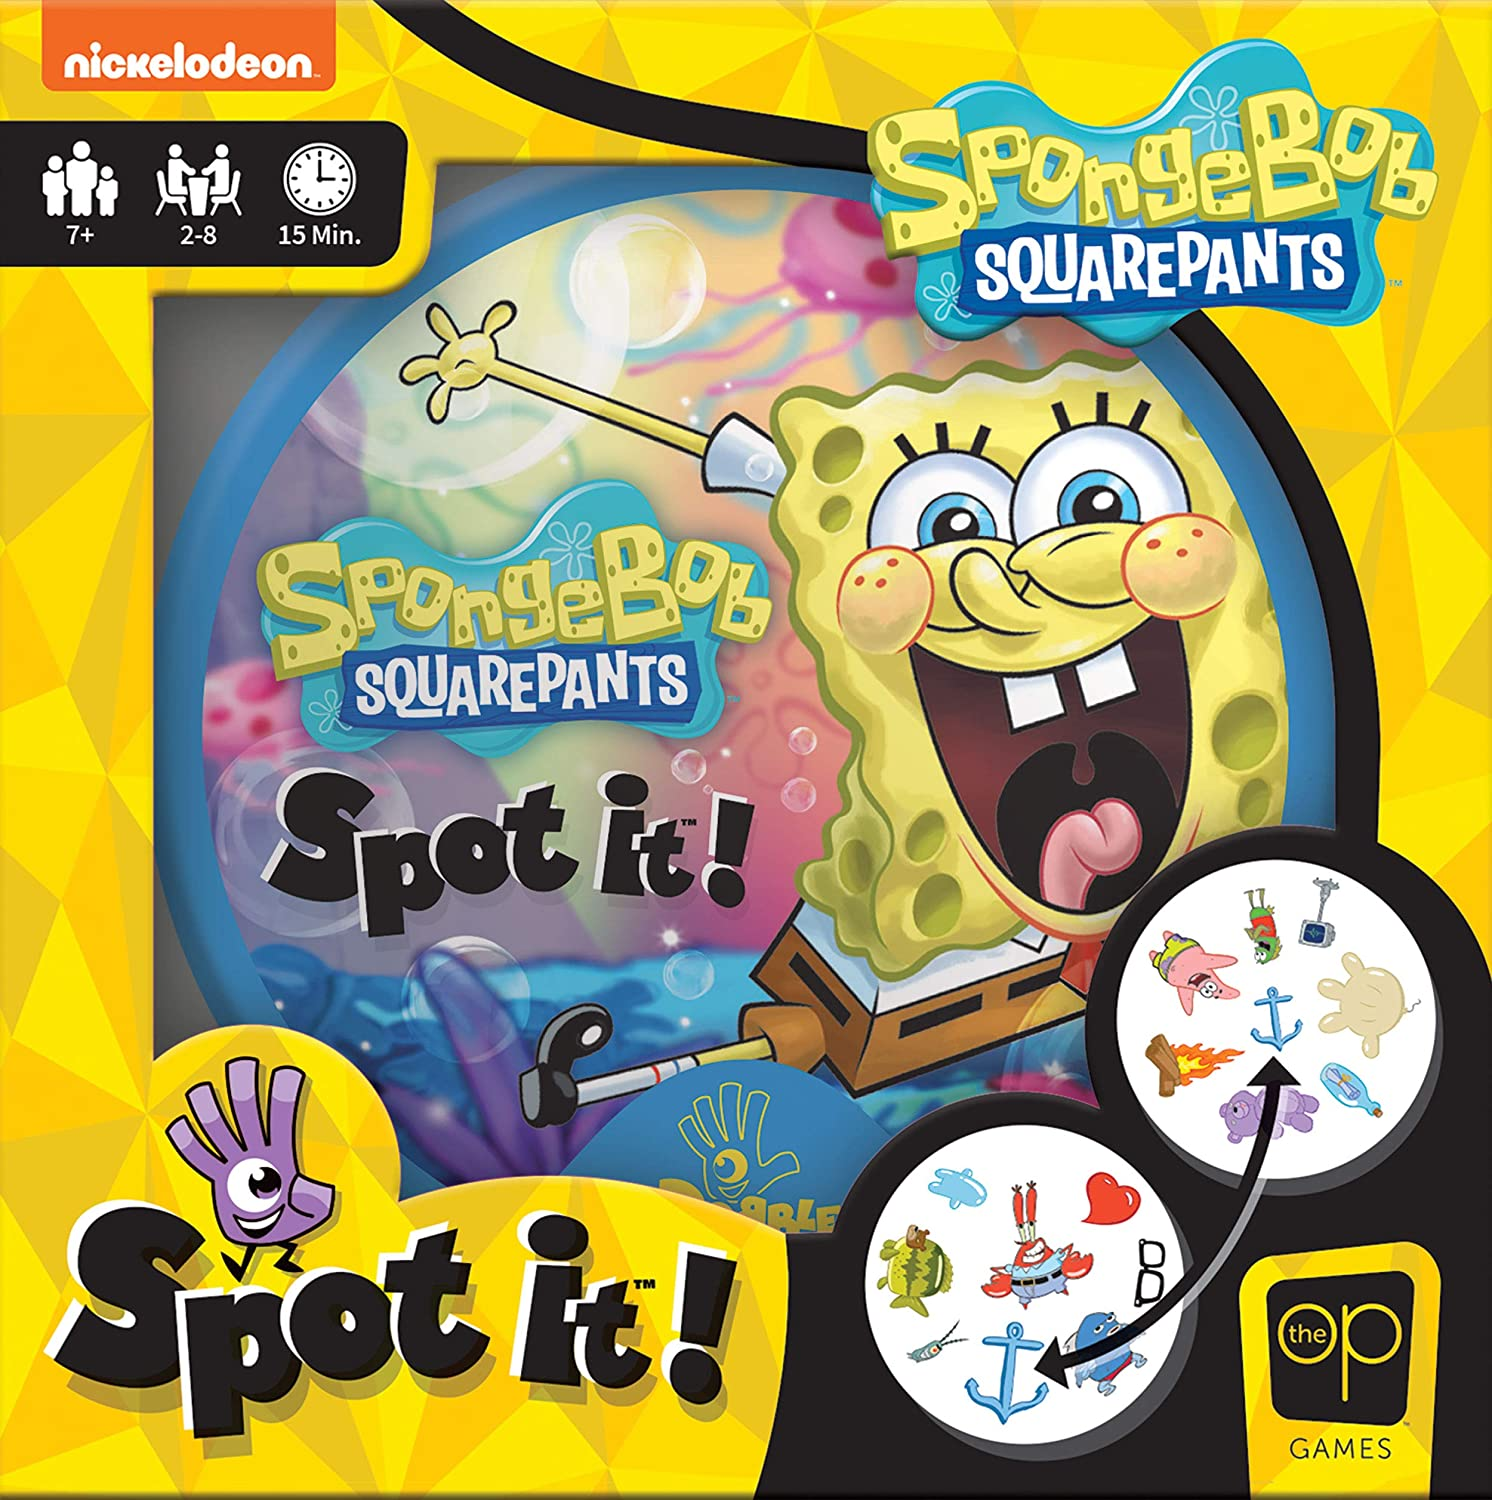 USAOPOLY Spot It! SpongeBob SquarePants | Fun Card Game for Kids and Adults | Featuring SpongeBob, Patrick, Squidward, The Krabby Patty, Gary and More | Licensed Nickelodeon SpongeBob SquarePants Game